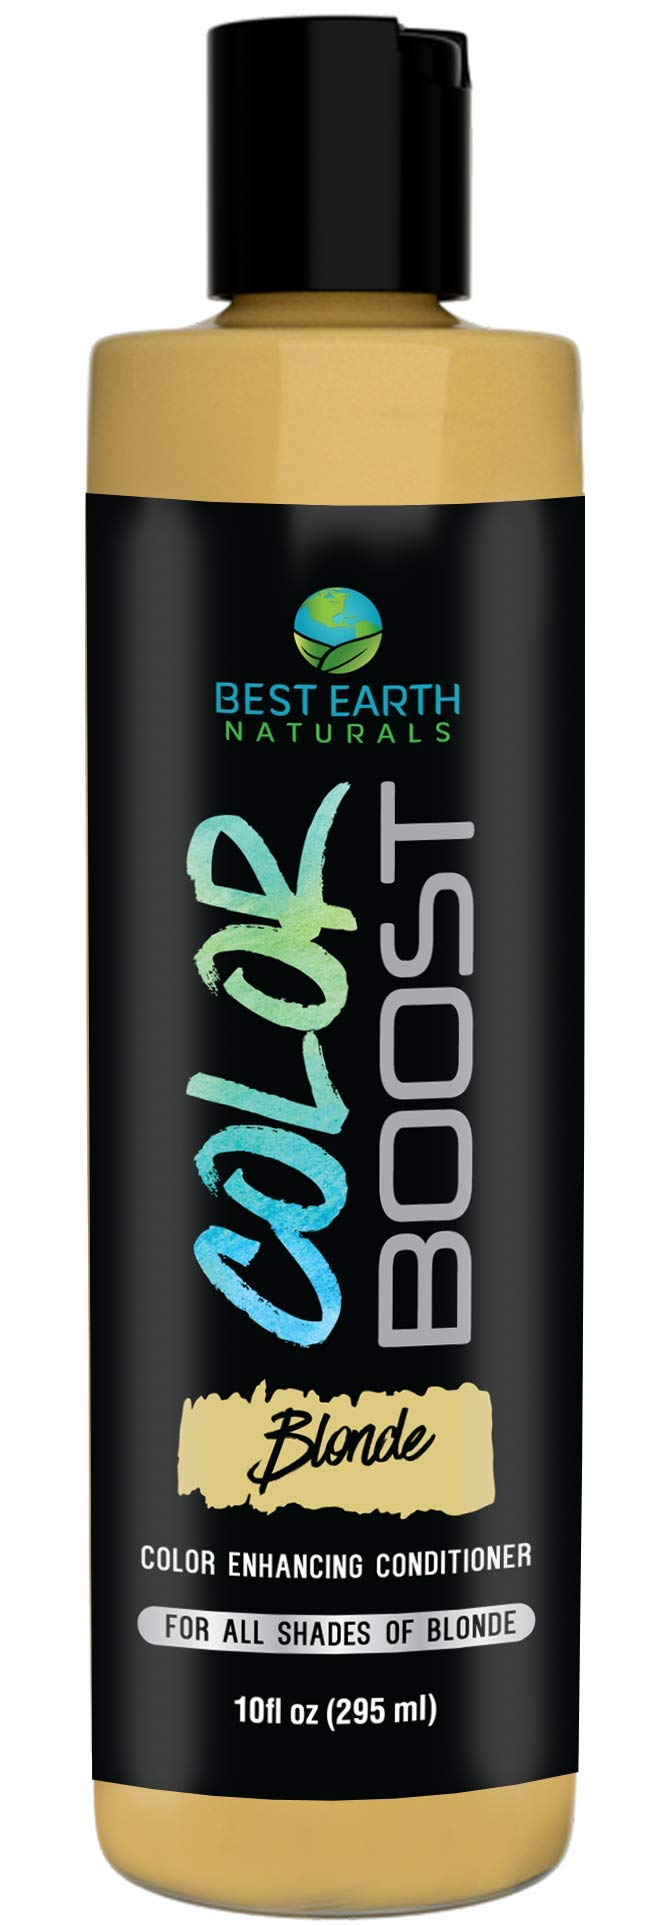 Color Boost Blonde Color Depositing Conditioner for All Shades of Blonde Hair to Add Color or Cover Gray Hair 10 Ounces... by Best Earth Naturals